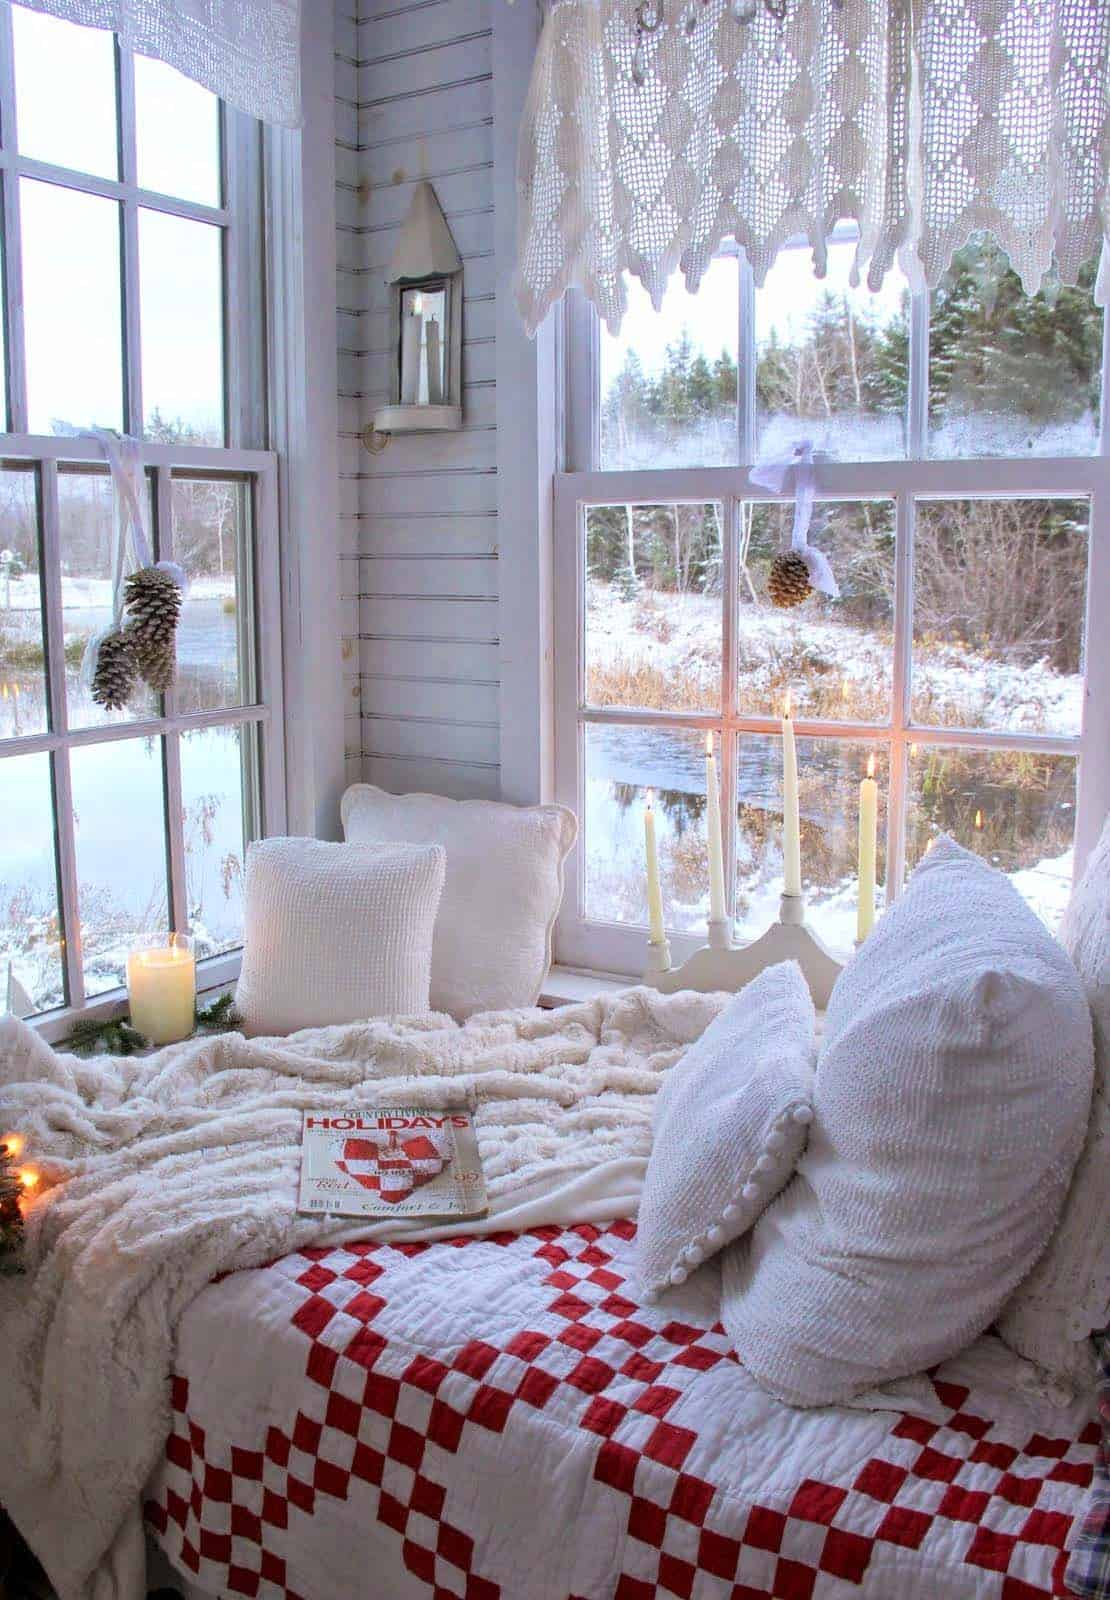 Christmas Bedroom Decorating Ideas 12 1 Kindesign. 35 Ways to create a Christmas wonderland in your bedroom